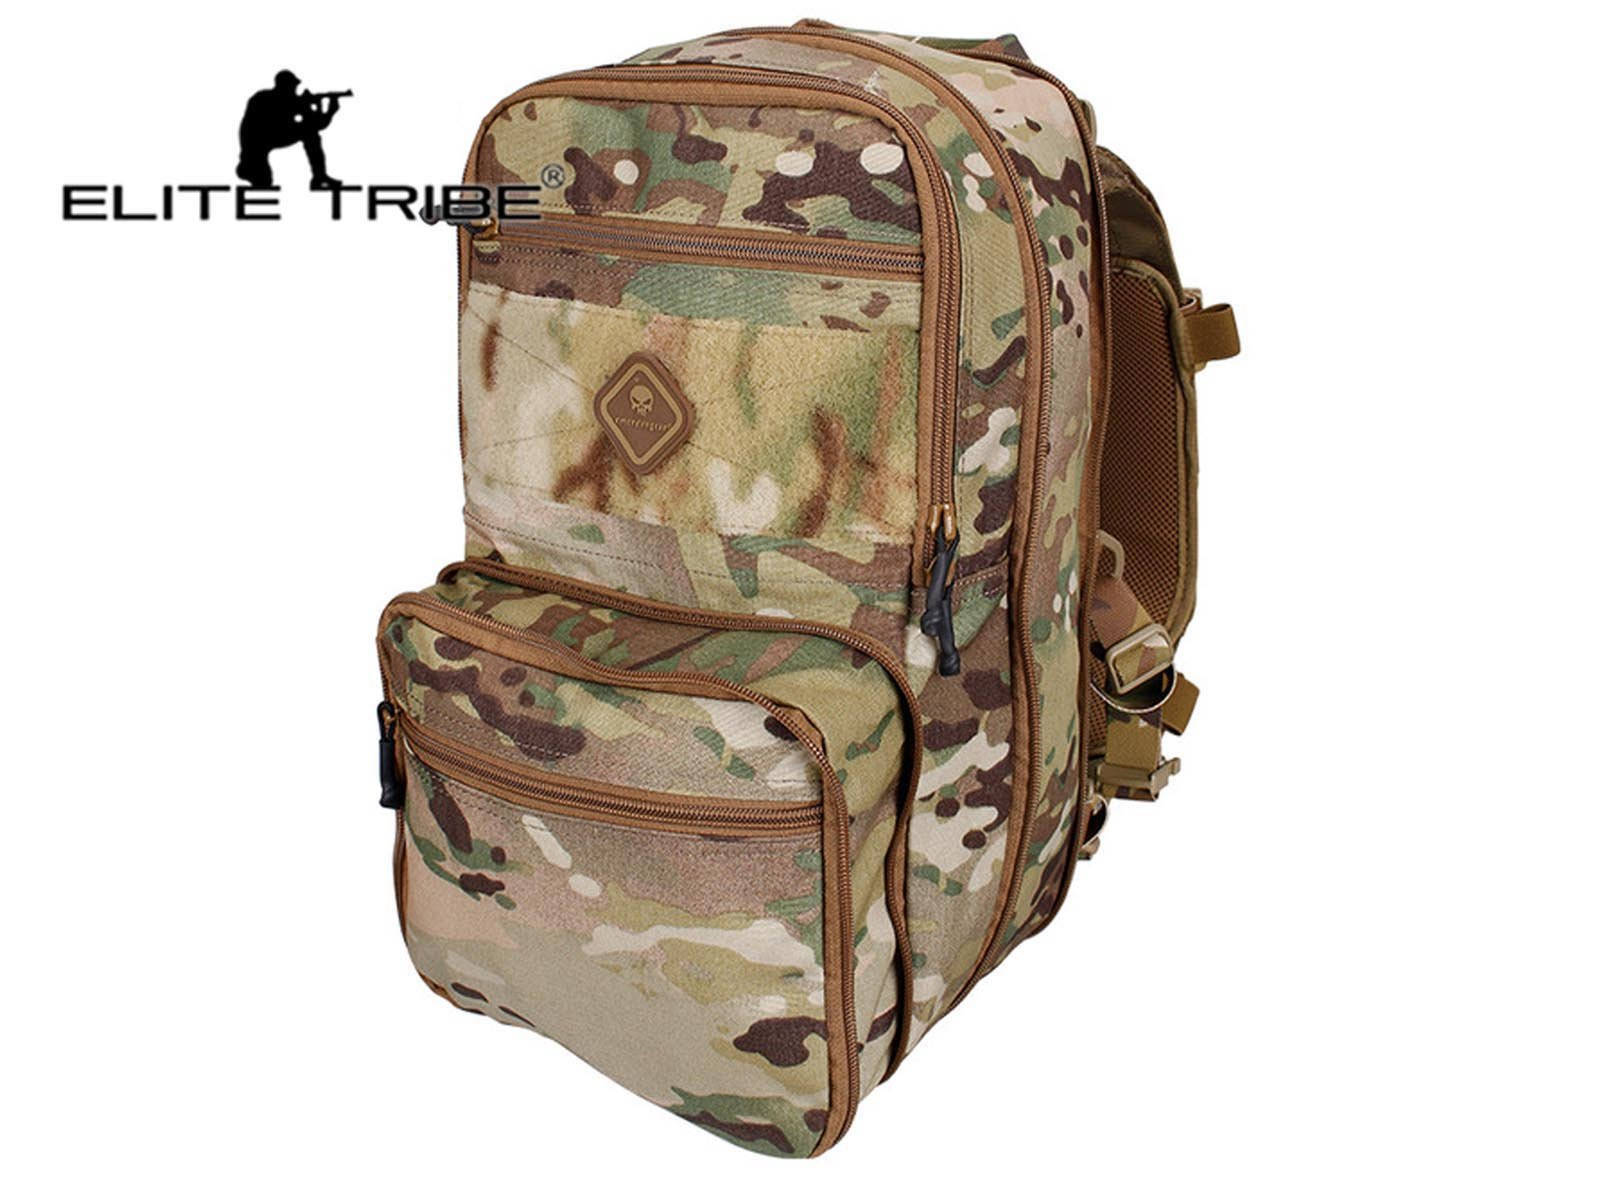 Elite Tribe Tactical Backpack Hydration Backpack Molle Pouch Military Multipurpose Travel Multi-purpose Shoulder Bag by Elite Tribe